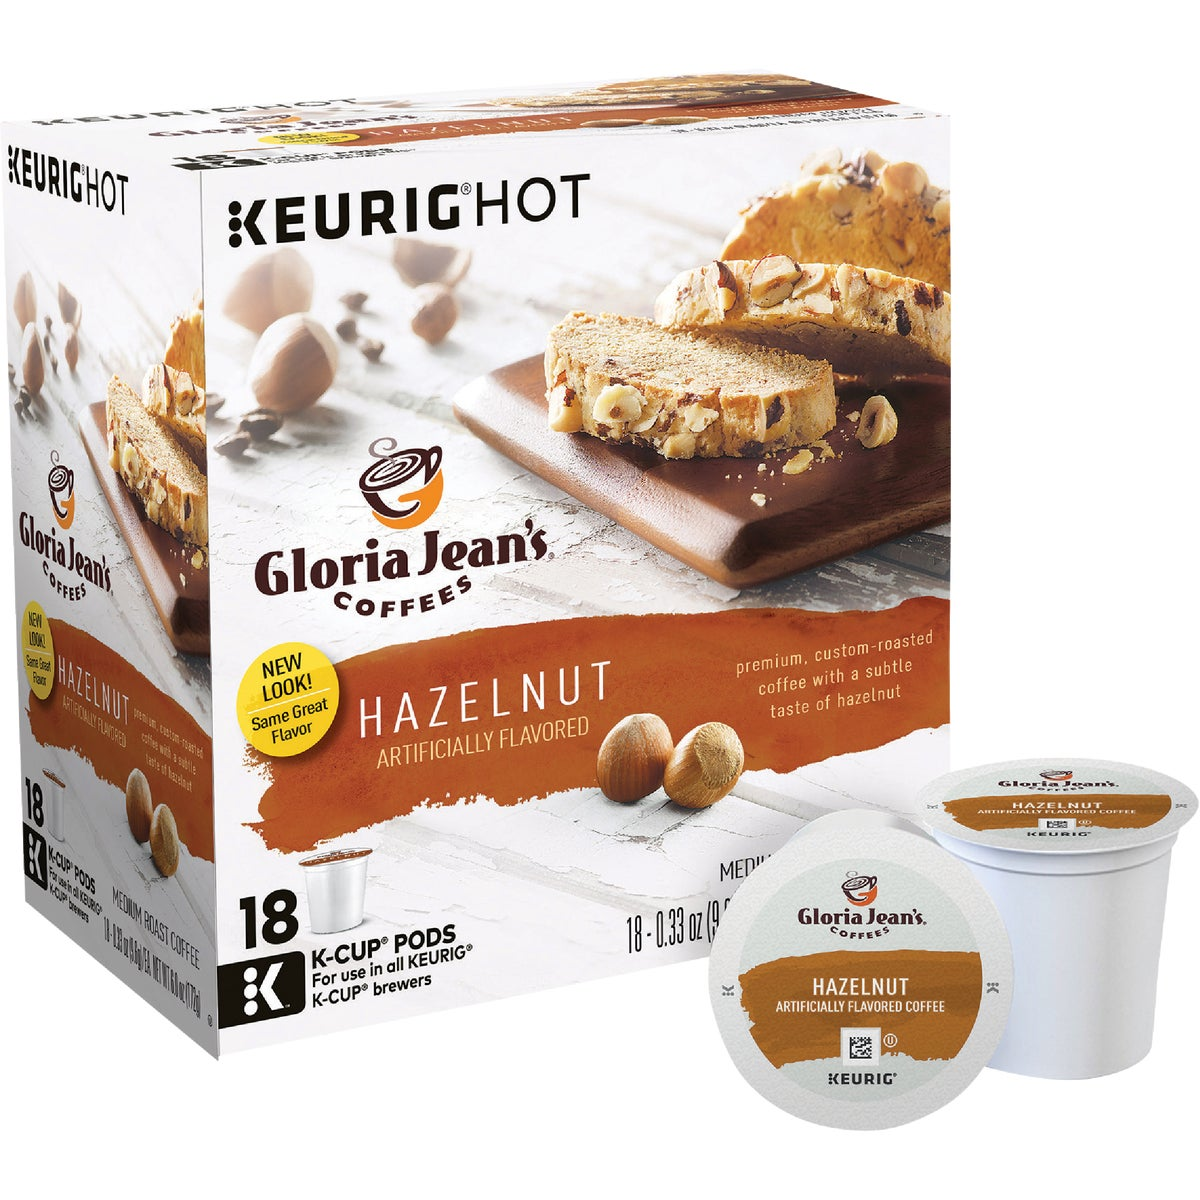 K-CUP HAZELNUT COFFEE - 00526 by Keurig     M Block